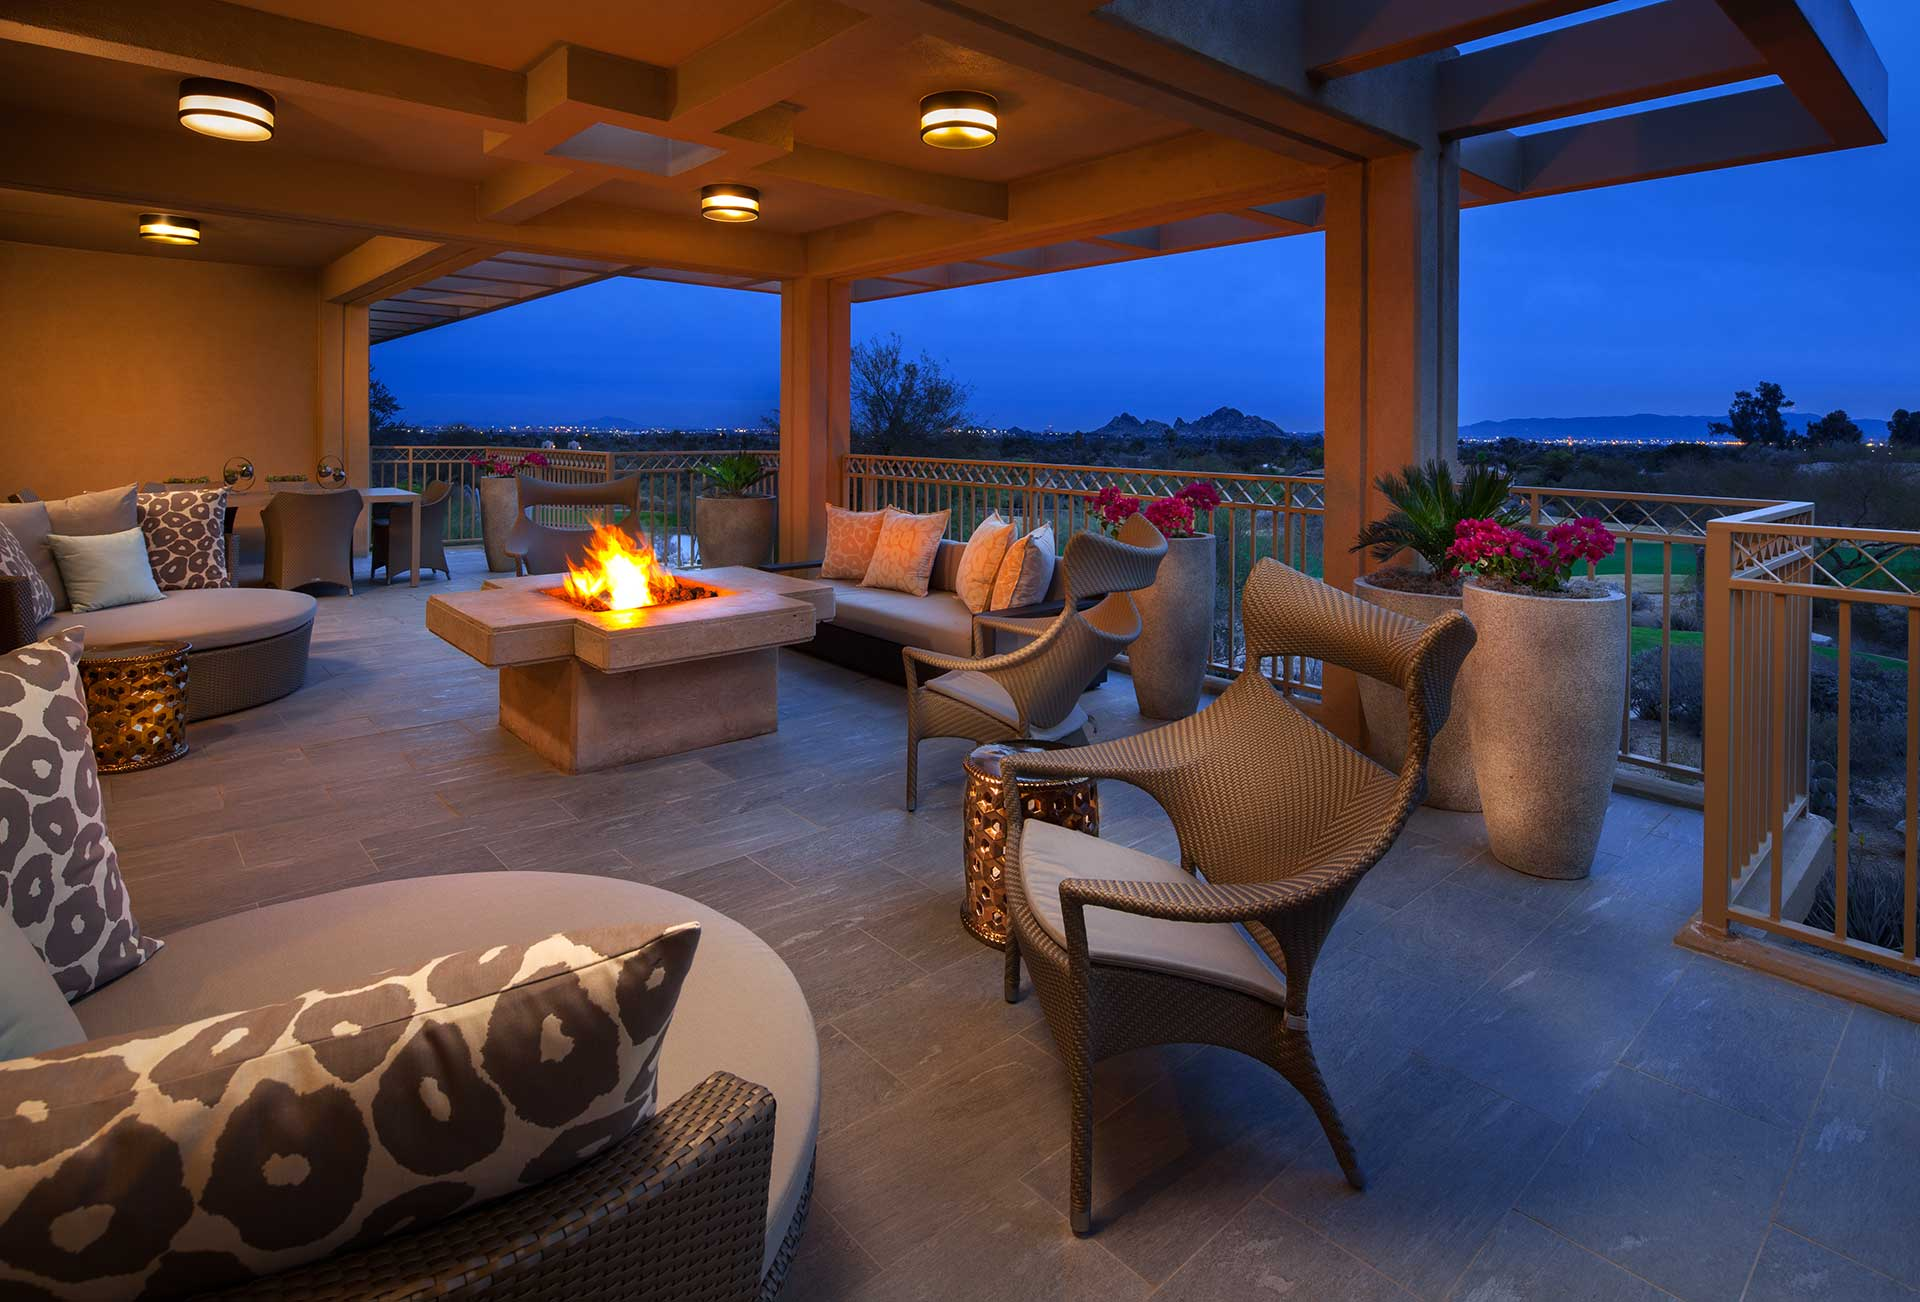 outdoor patio covered by roof with chairs and fire pit